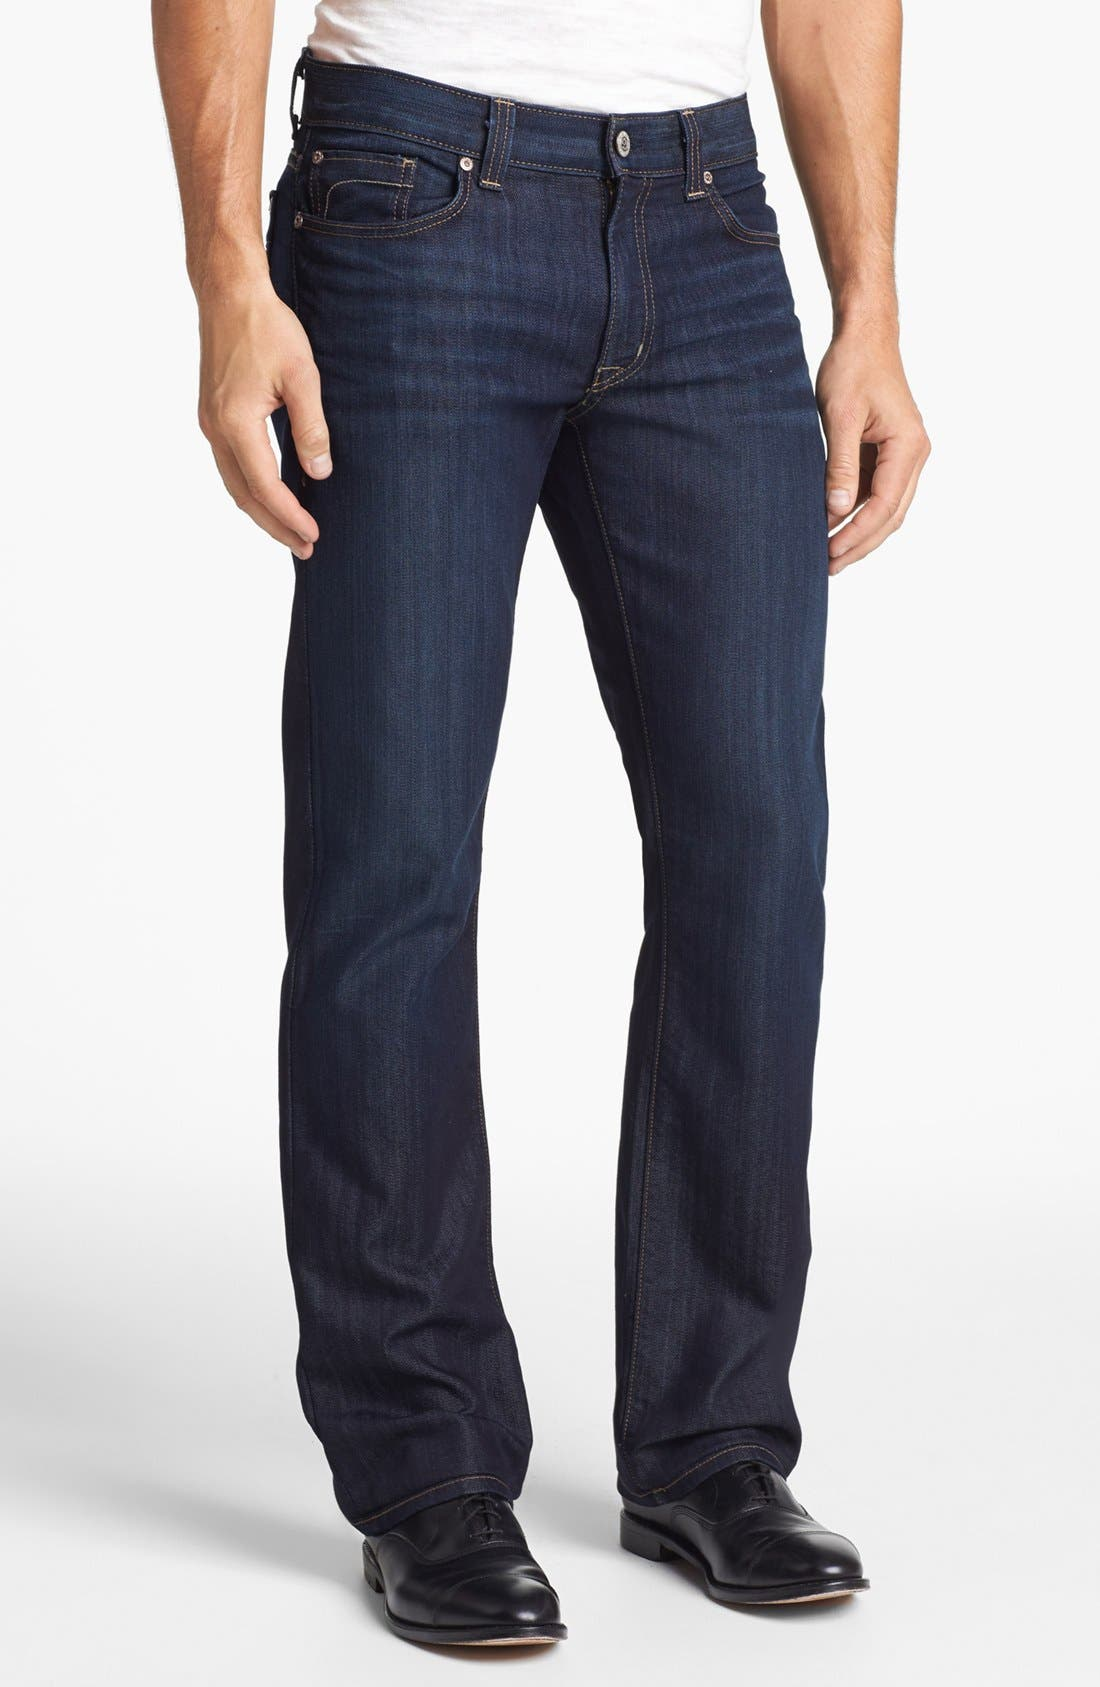 Fidelity Denim 50-11 Relaxed Fit Jeans (Calvary)